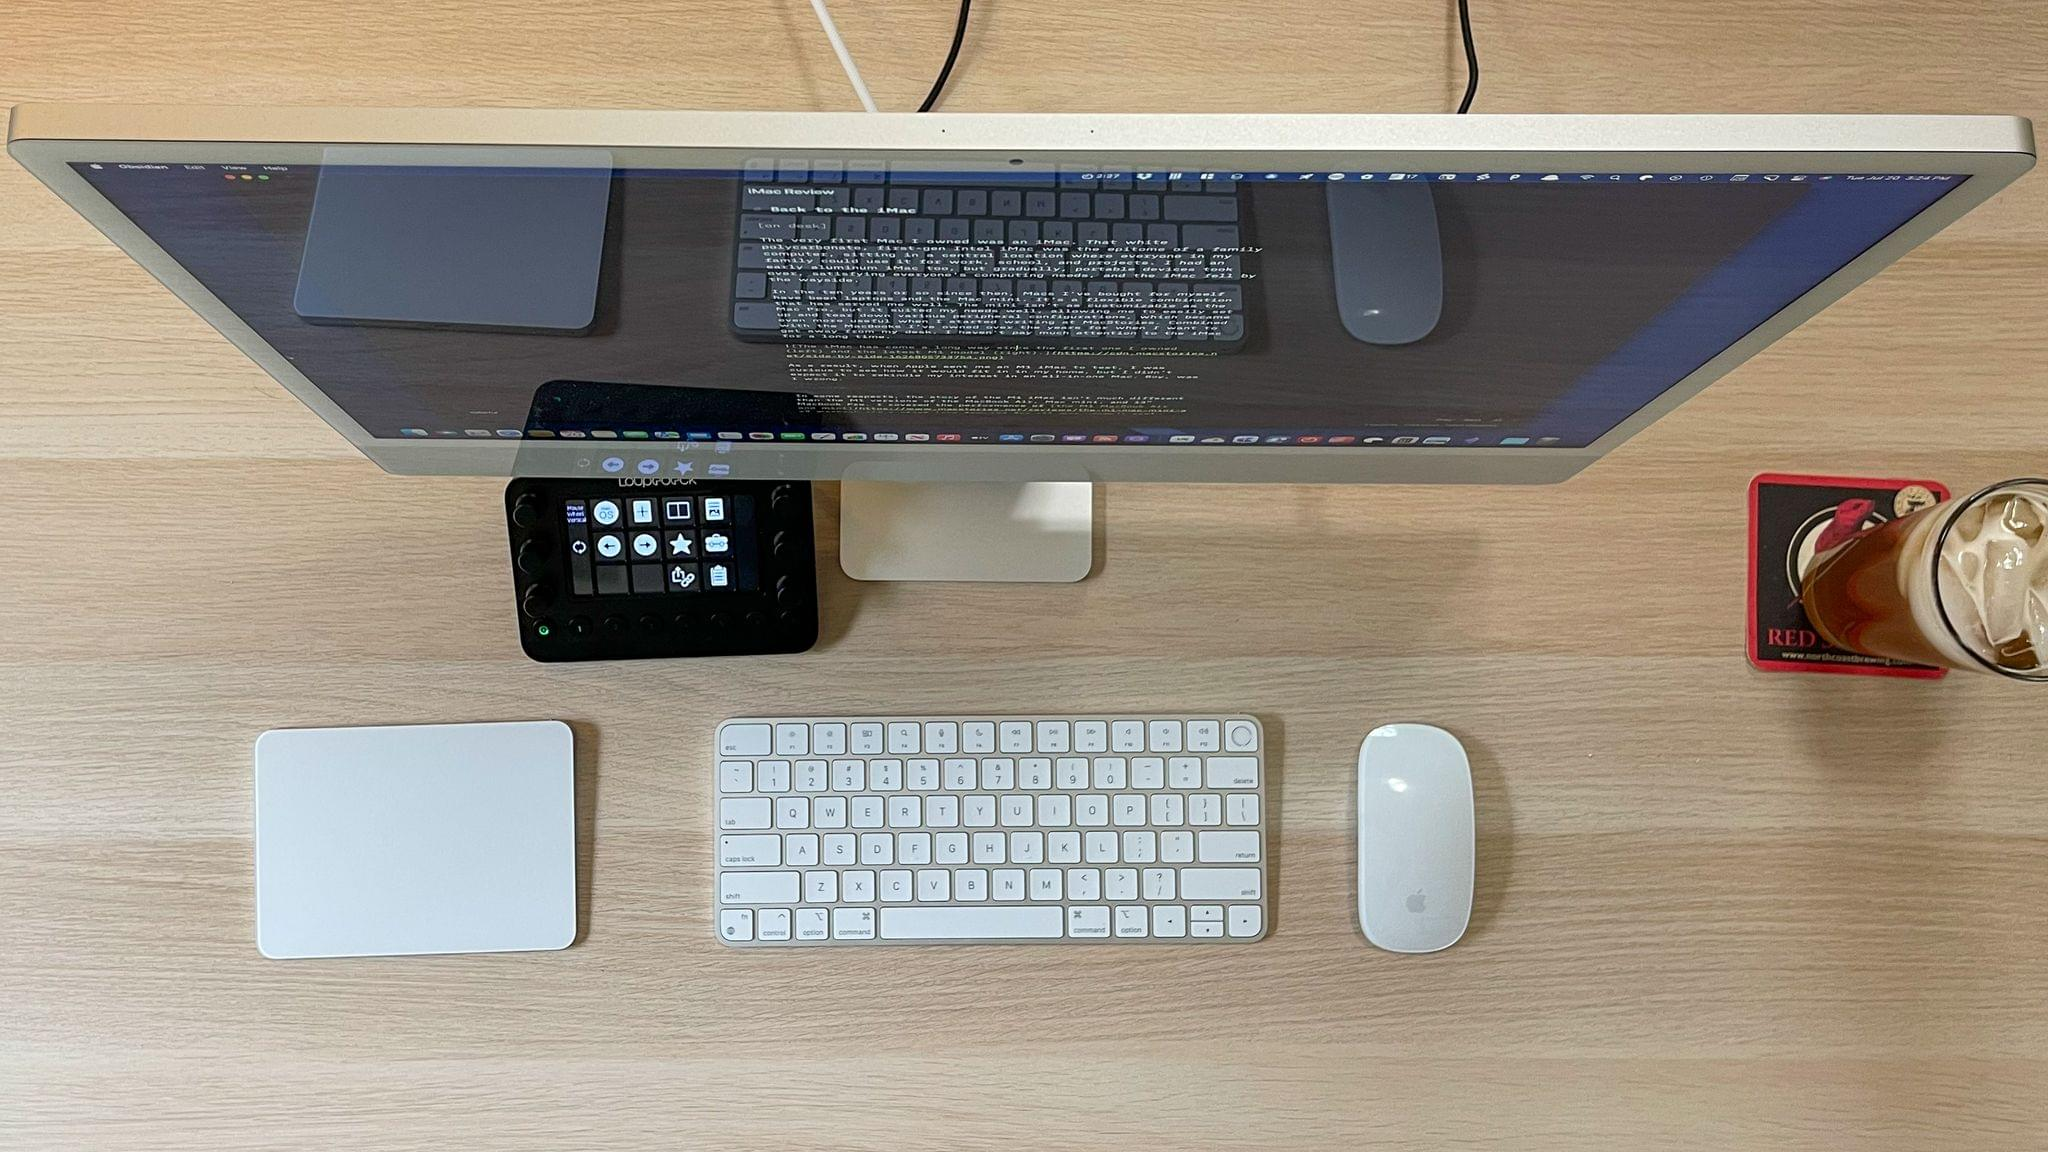 The M1 iMac is barely there when viewed from the side.